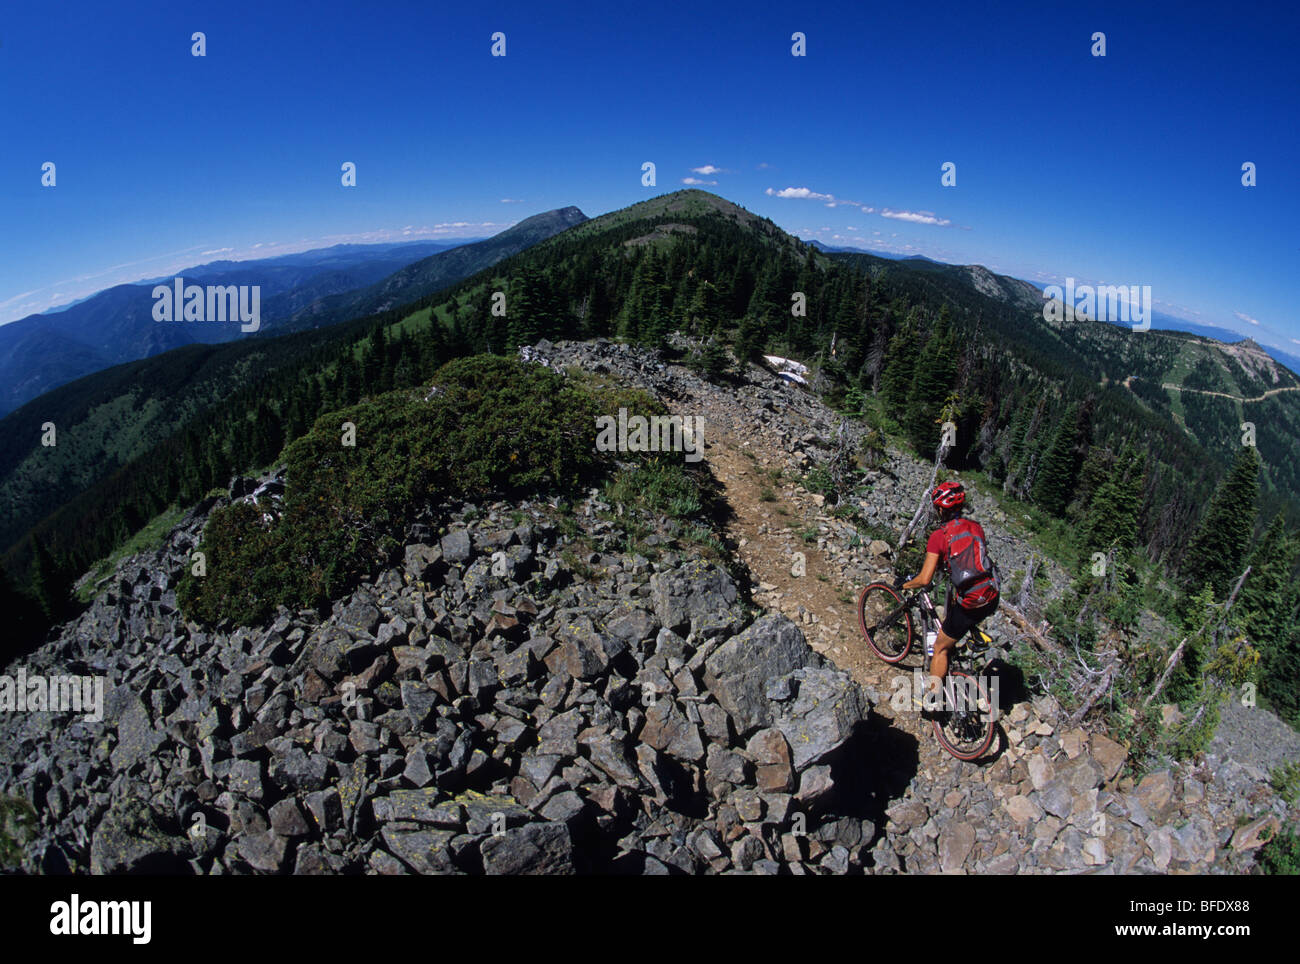 A woman on her mountain bike enjoying the Seven Summit Trail in Rossland, British Columbia, Canada - Stock Image